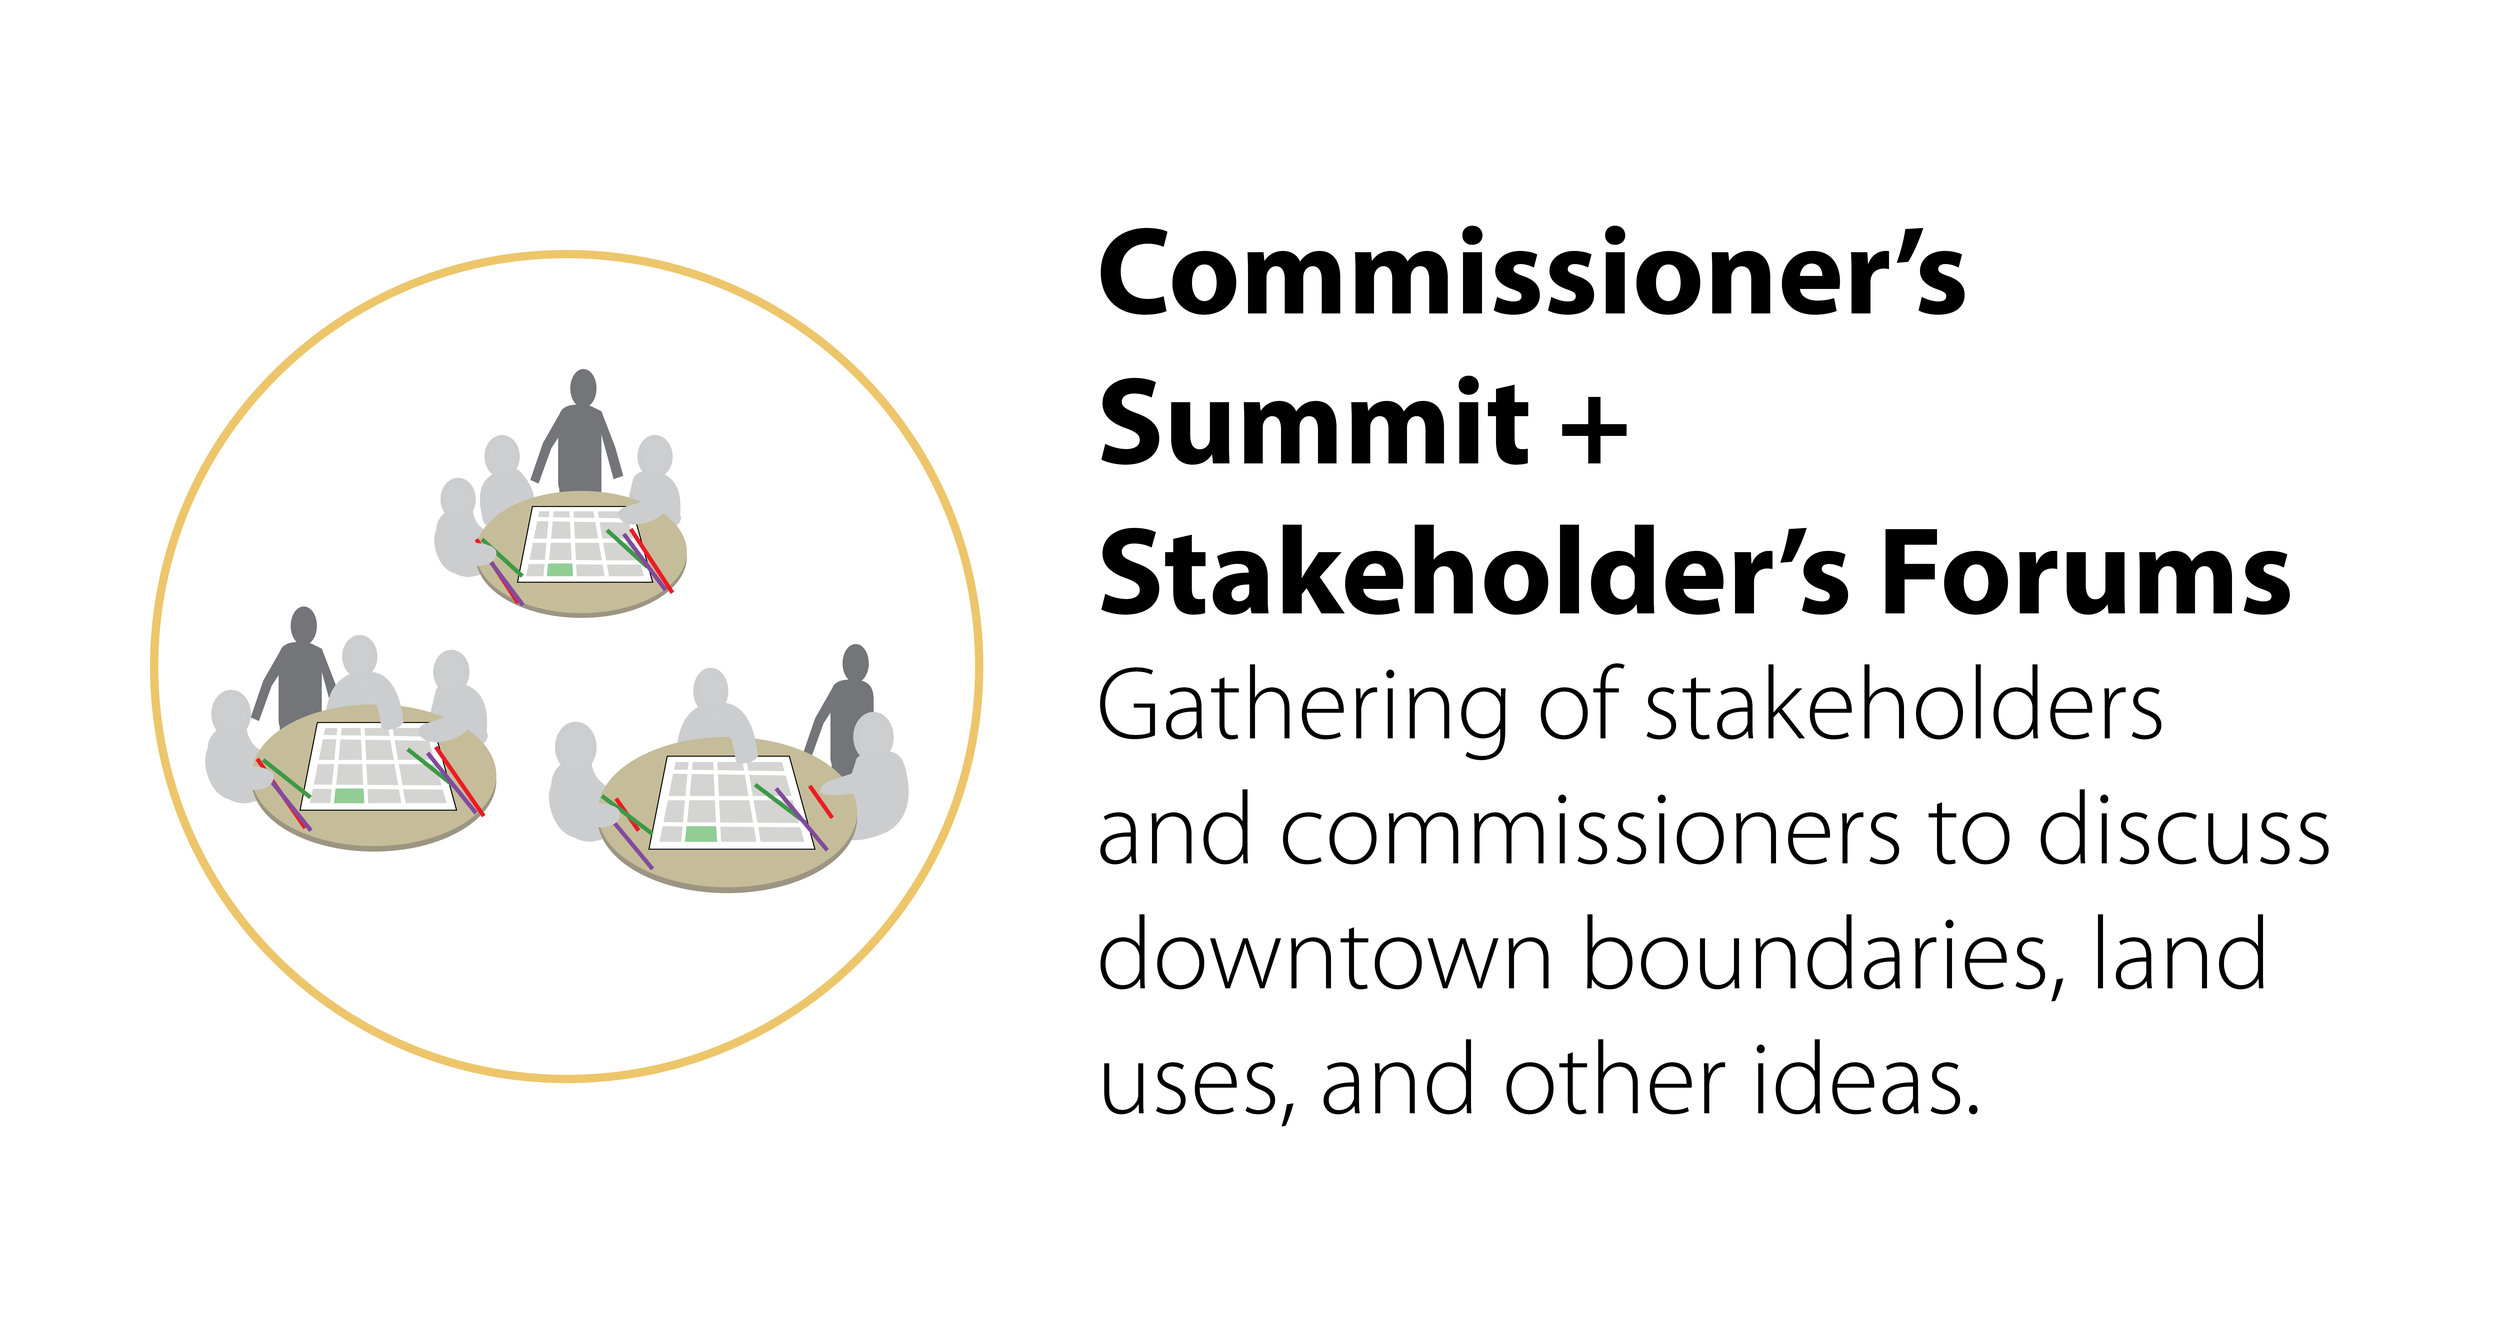 Commissioner's Summit and Stakeholder's Forums.jpg